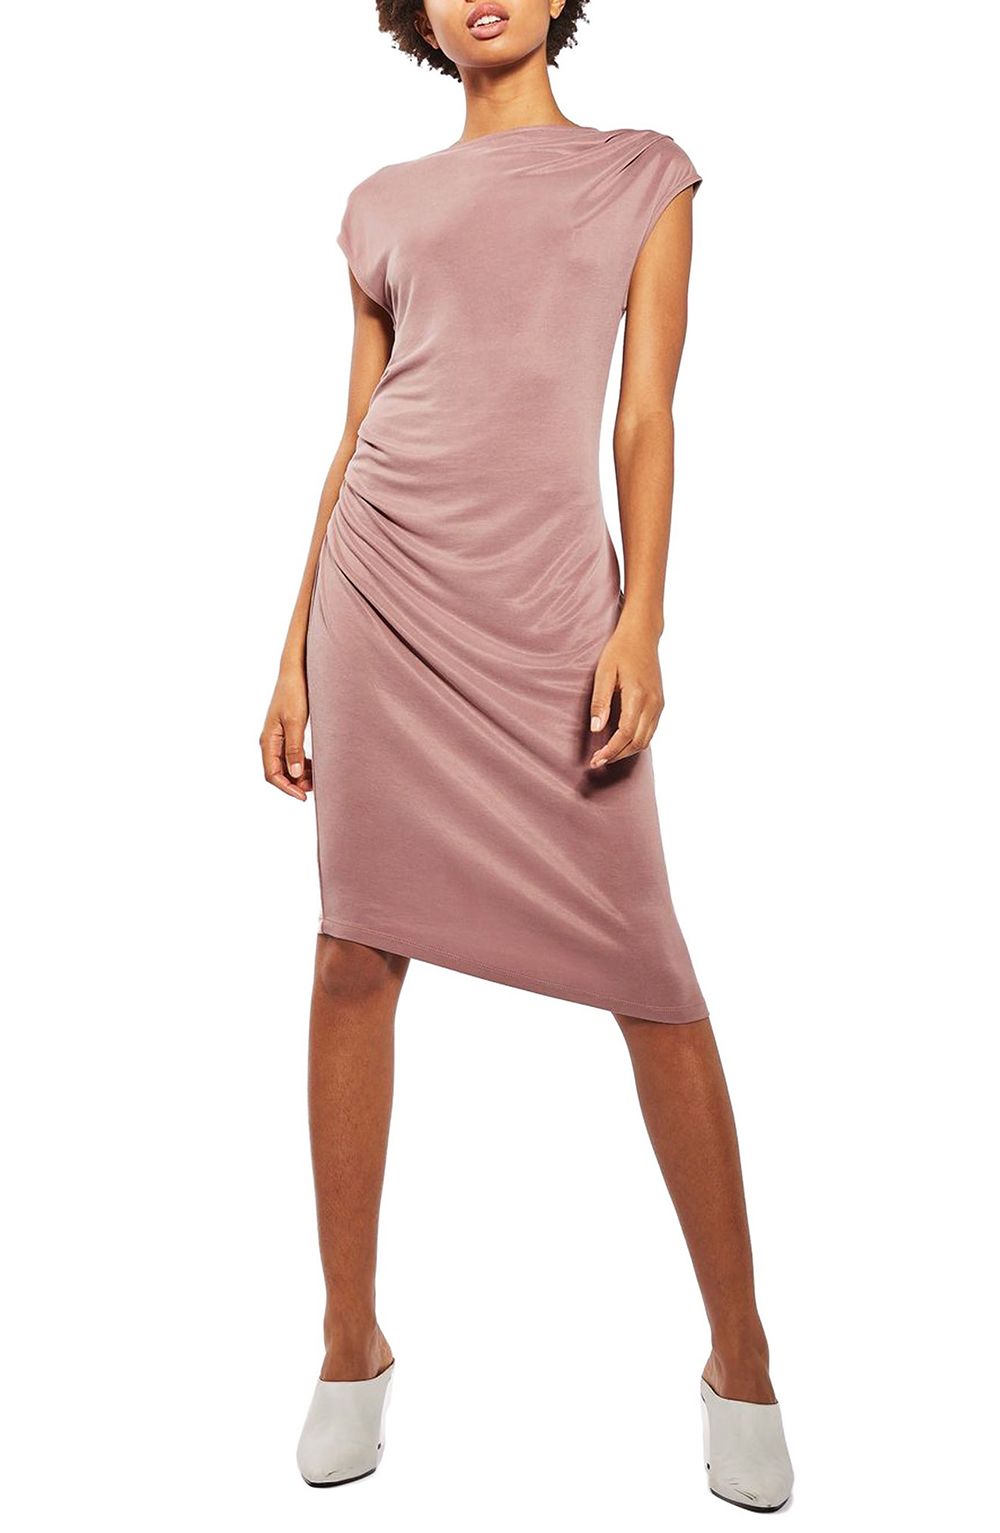 Topshop Asymmetric Slinky Drape Midi Dress - Wardrobe Refresh: Topshop for Spring